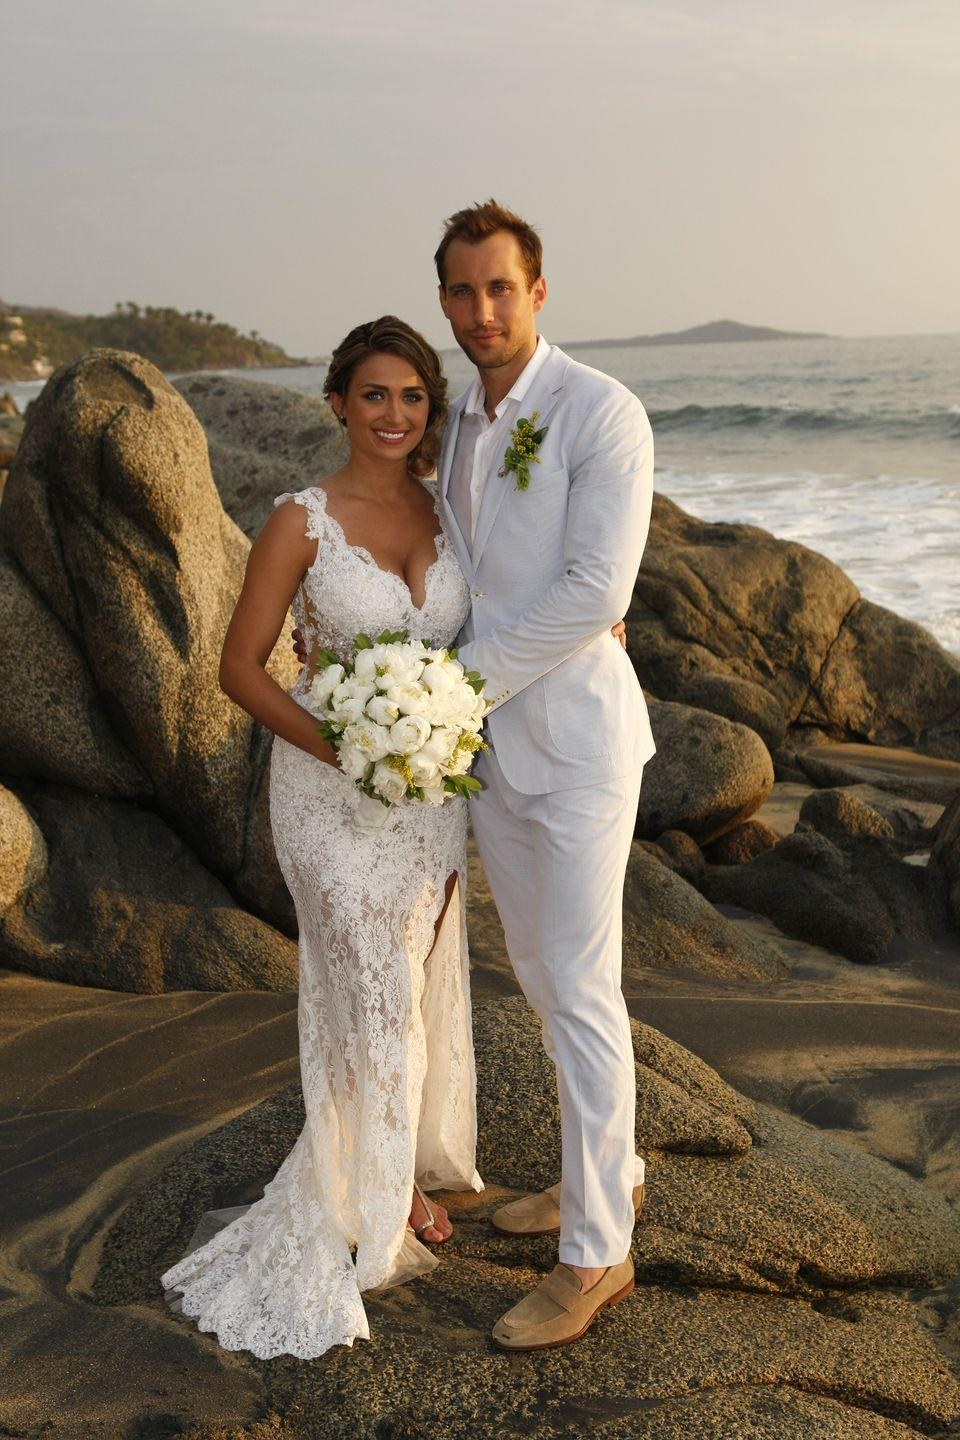 """<p><em>Paradise</em>'s golden couple from season 1 seemed like they were the perfect pair. They even got married on the premiere of season 2 and were the first <em>BiP</em> couple to have their own televised wedding. </p><p>But wedded bliss didn't last long. Lacy and Marcus split up a few months after their wedding and then revealed their marriage was never official legally. """"When we came back, we were supposed to start the paperwork, but she stalled,"""" Marcus told <a href=""""https://www.lifeandstylemag.com/posts/bachelor-in-paradise-marcus-grodd-lacy-faddoul-marriage-breakup-105212/"""" rel=""""nofollow noopener"""" target=""""_blank"""" data-ylk=""""slk:Life & Style"""" class=""""link rapid-noclick-resp""""><em>Life & Style</em></a>. She apparently suggested he get his own place and then completely cut off communication, essentially ghosting him.</p>"""